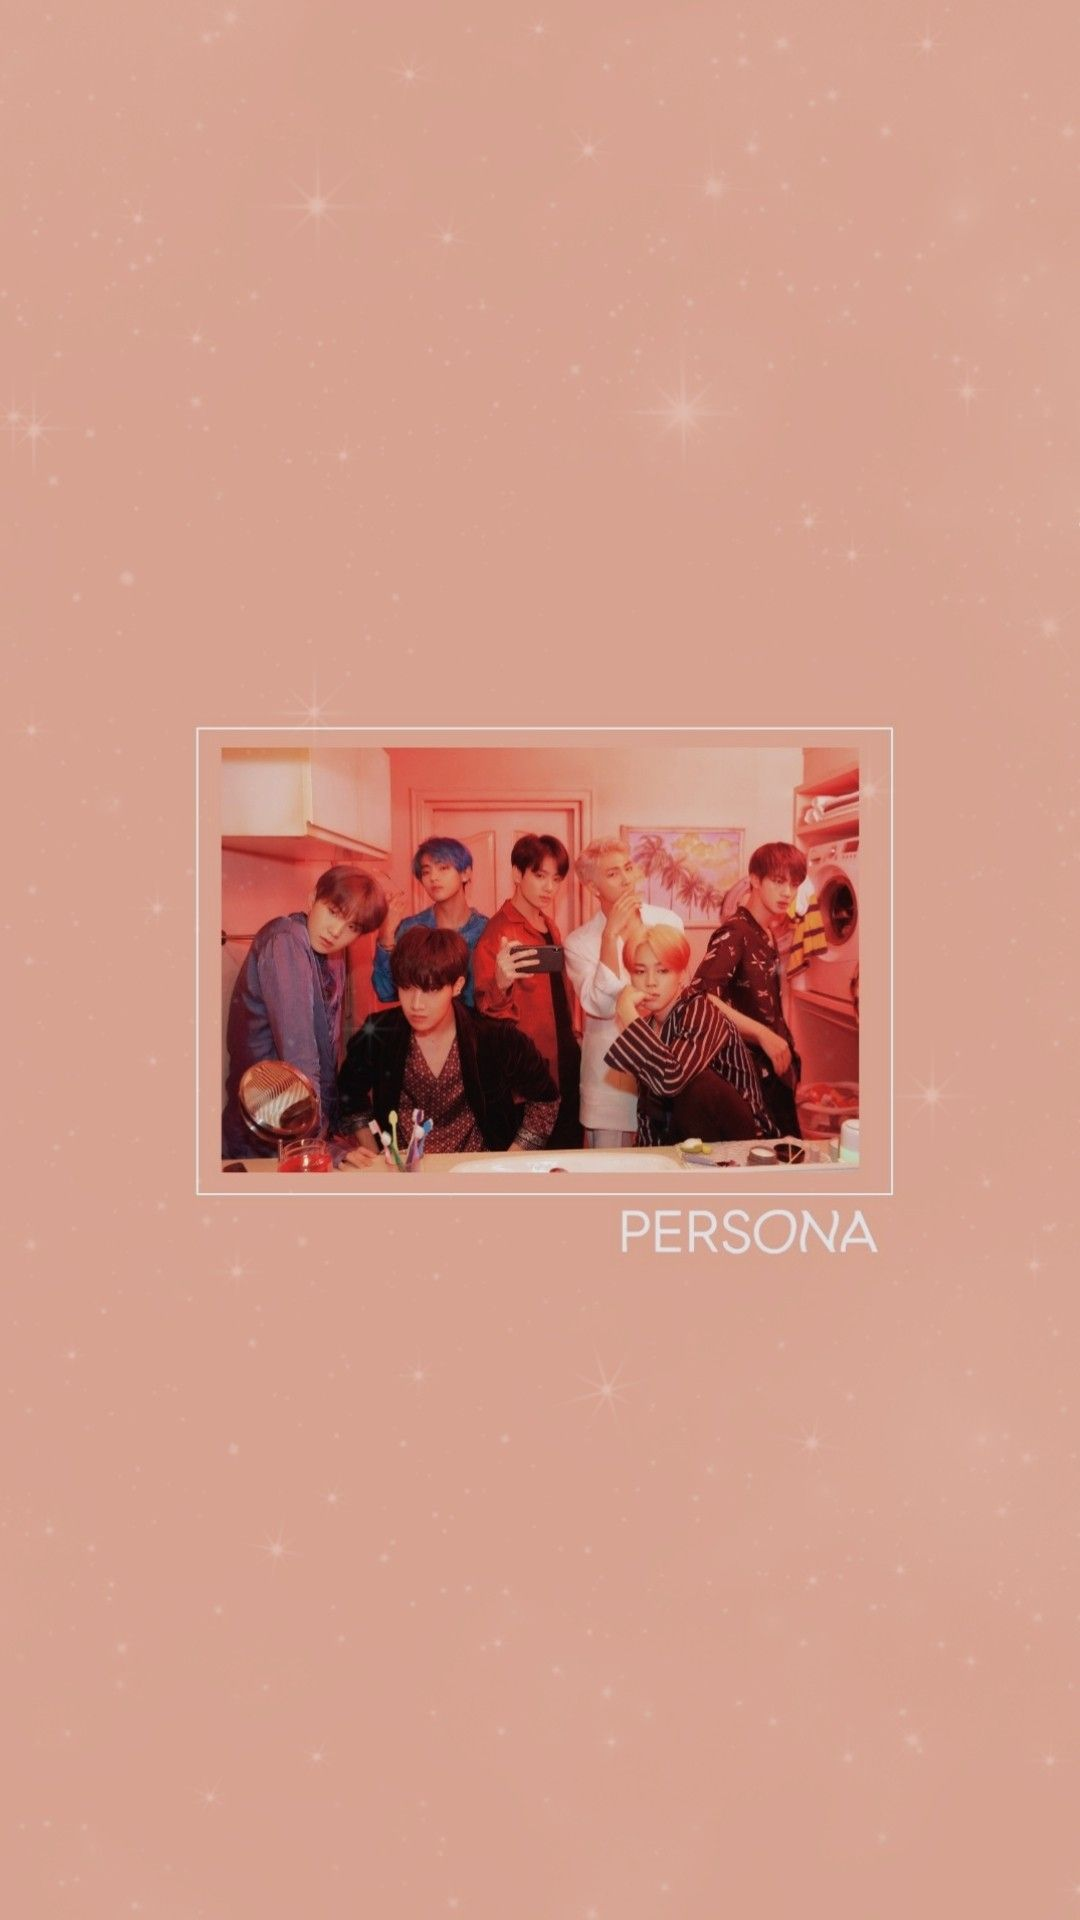 Persona Bts Wallpaper In 2019 Bts Wallpaper Bts